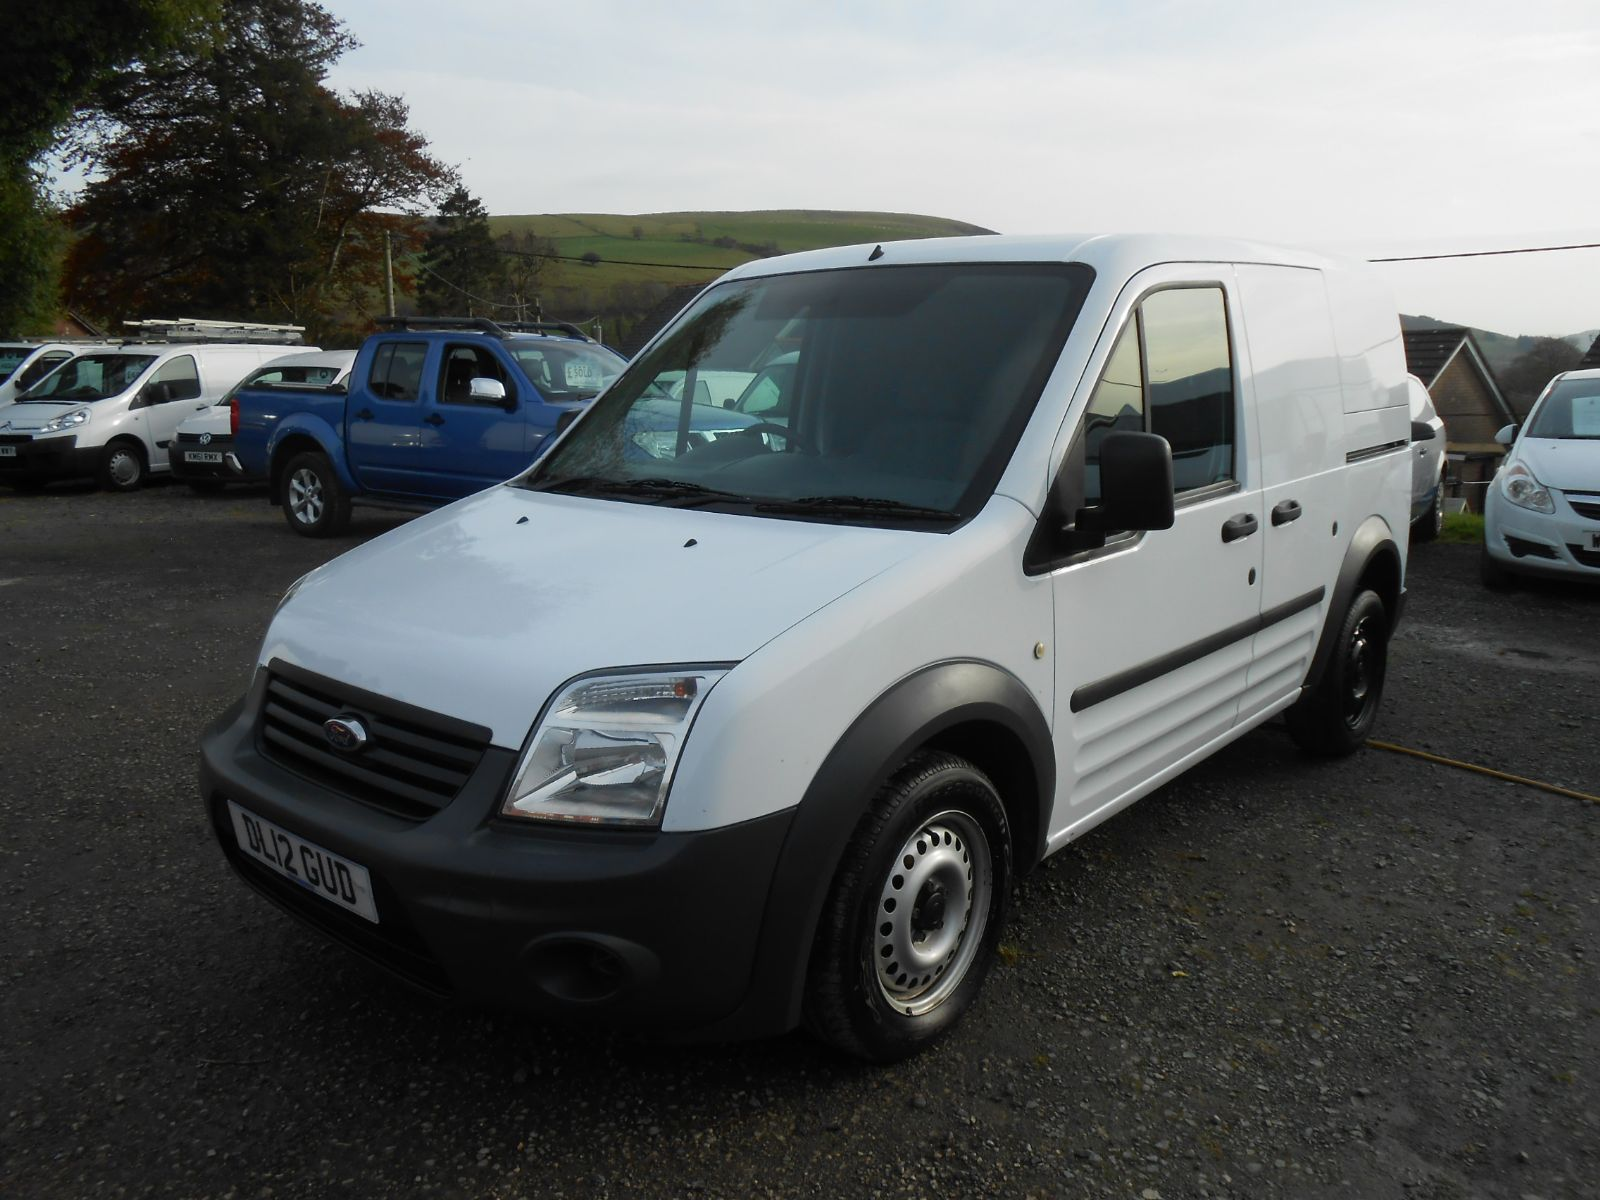 ford transit connect 1 8 tdci t200 car for sale llanidloes powys mid wales kevin jones cars Transit Connect Cargo Transit Connect Interior